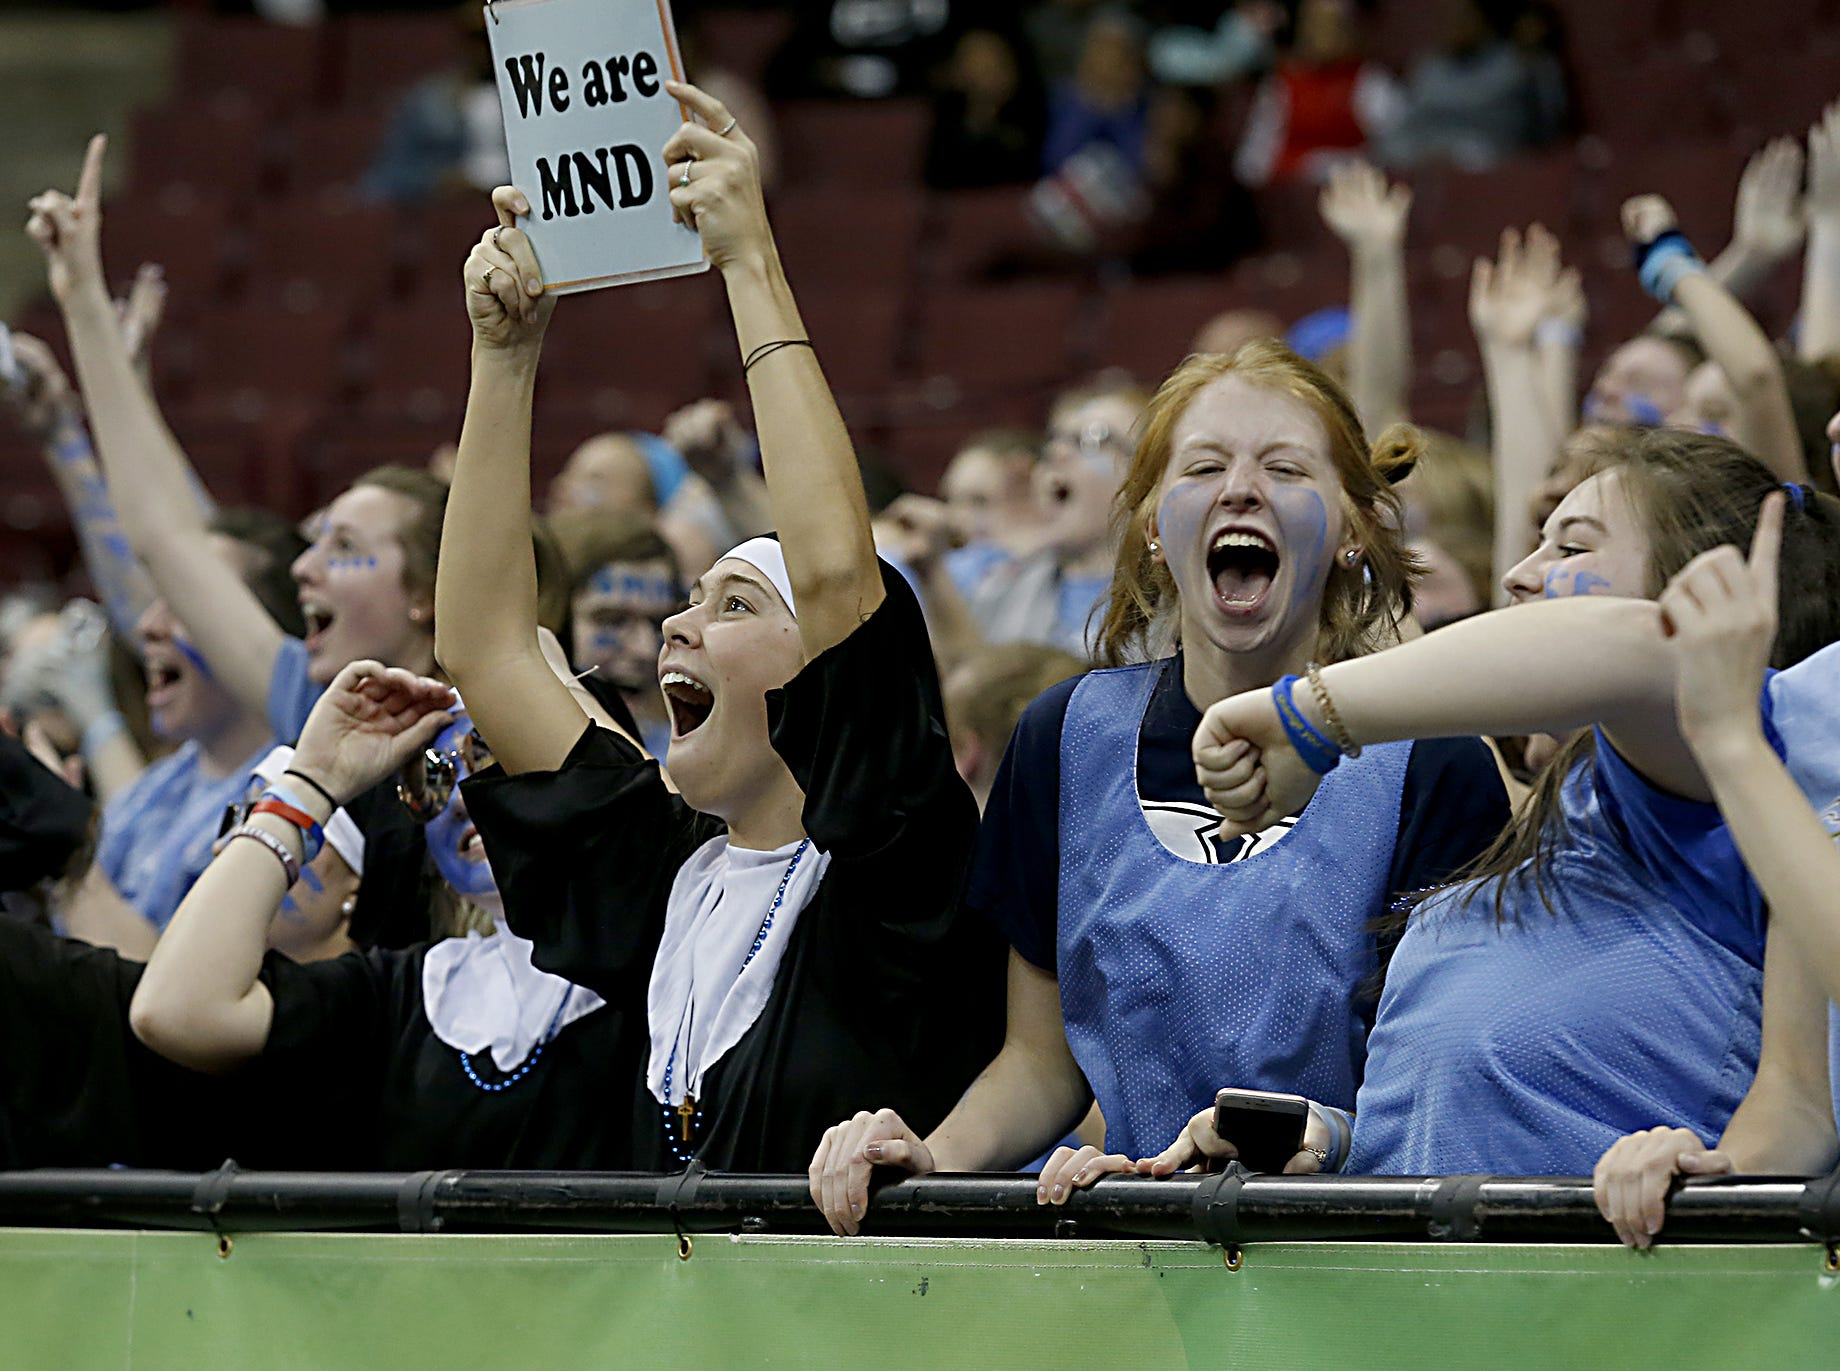 The Mount Notre Dame student section reacts as their school defeats GlenOak in their Division I semifinal game in the 44th Annual State Girls Basketball Tournament at the Schottenstein Center in Columbus Friday, March 15, 2019.